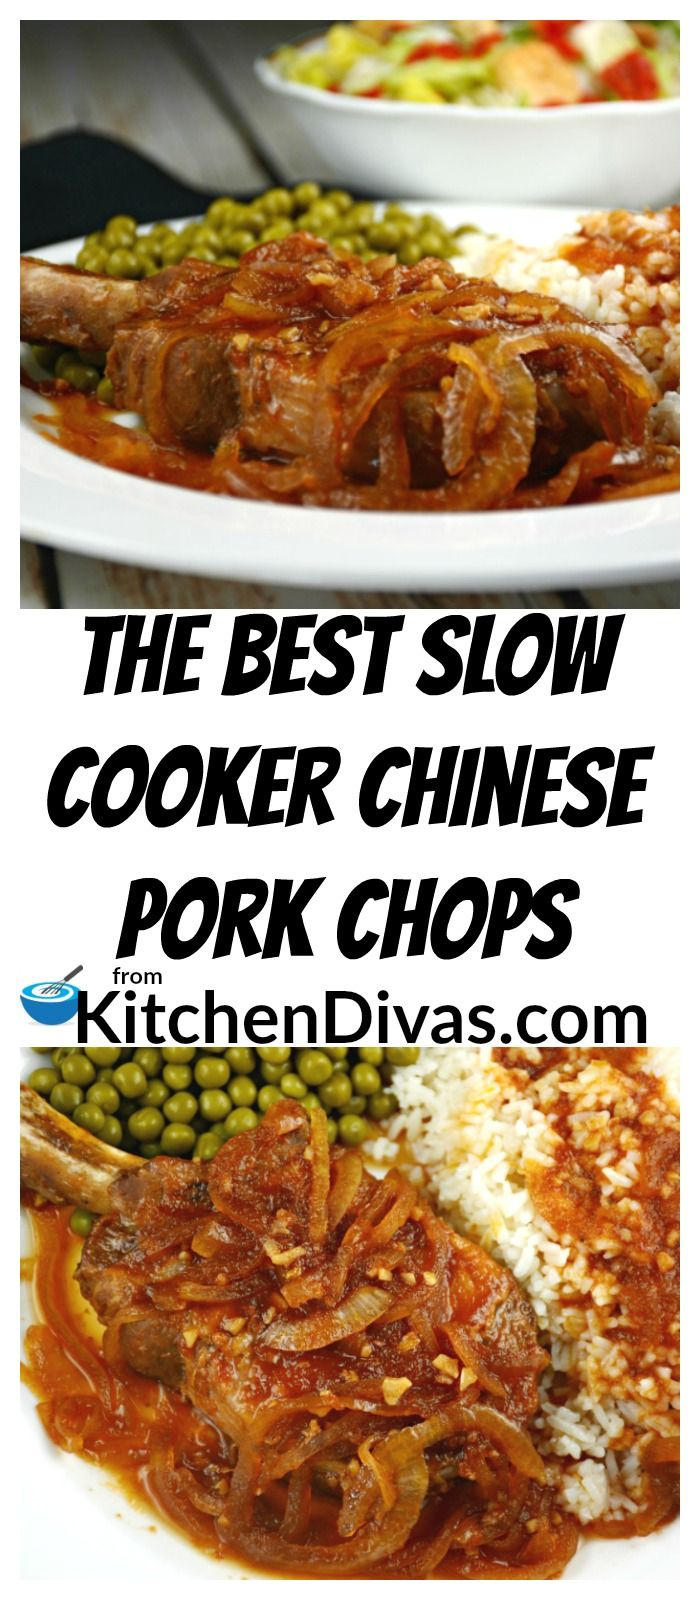 The Best Slow Cooker Chinese Pork Chops takes little time to prepare and the result is fantastic! Just throw everything into your slow cooker and when you return you will have a delicious dinner almost ready to go! All you need to prepare is a vegetable or salad and potato or rice! How easy is that?